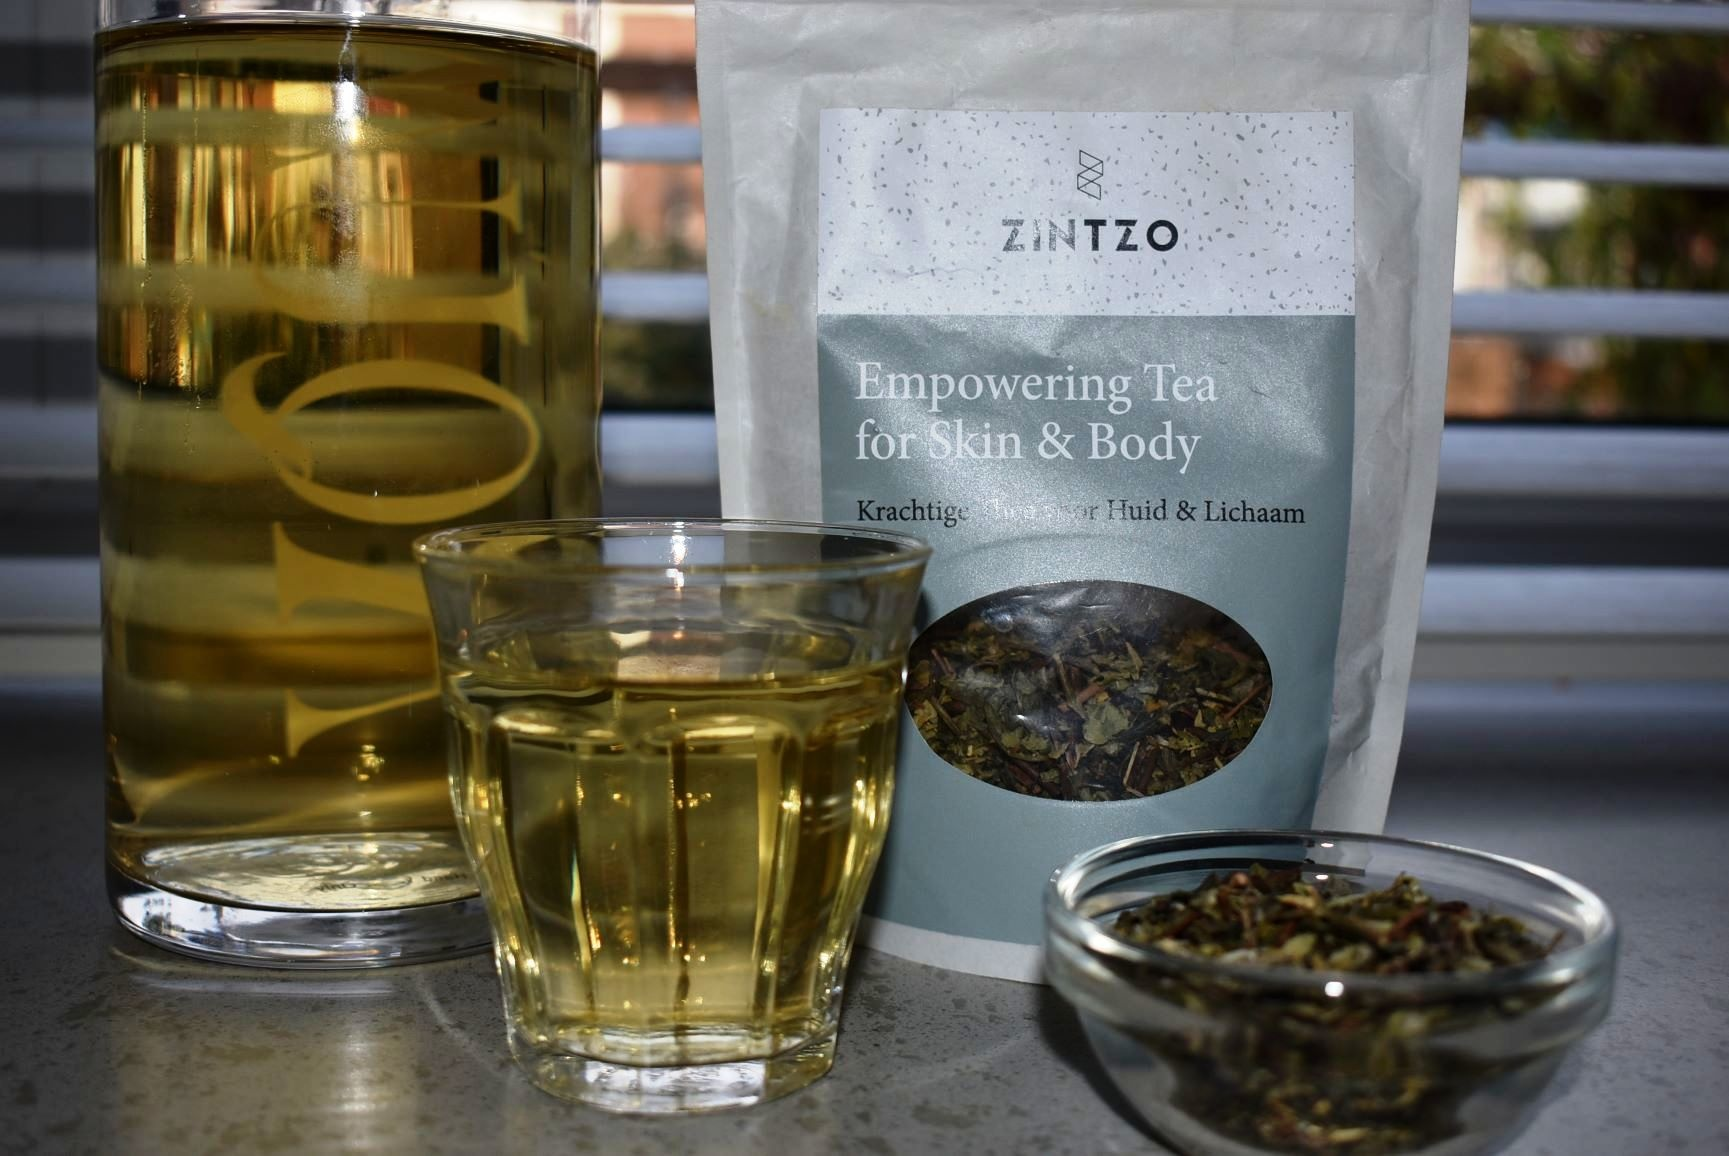 Review Zintzo Empowering Tea for Skin & Body